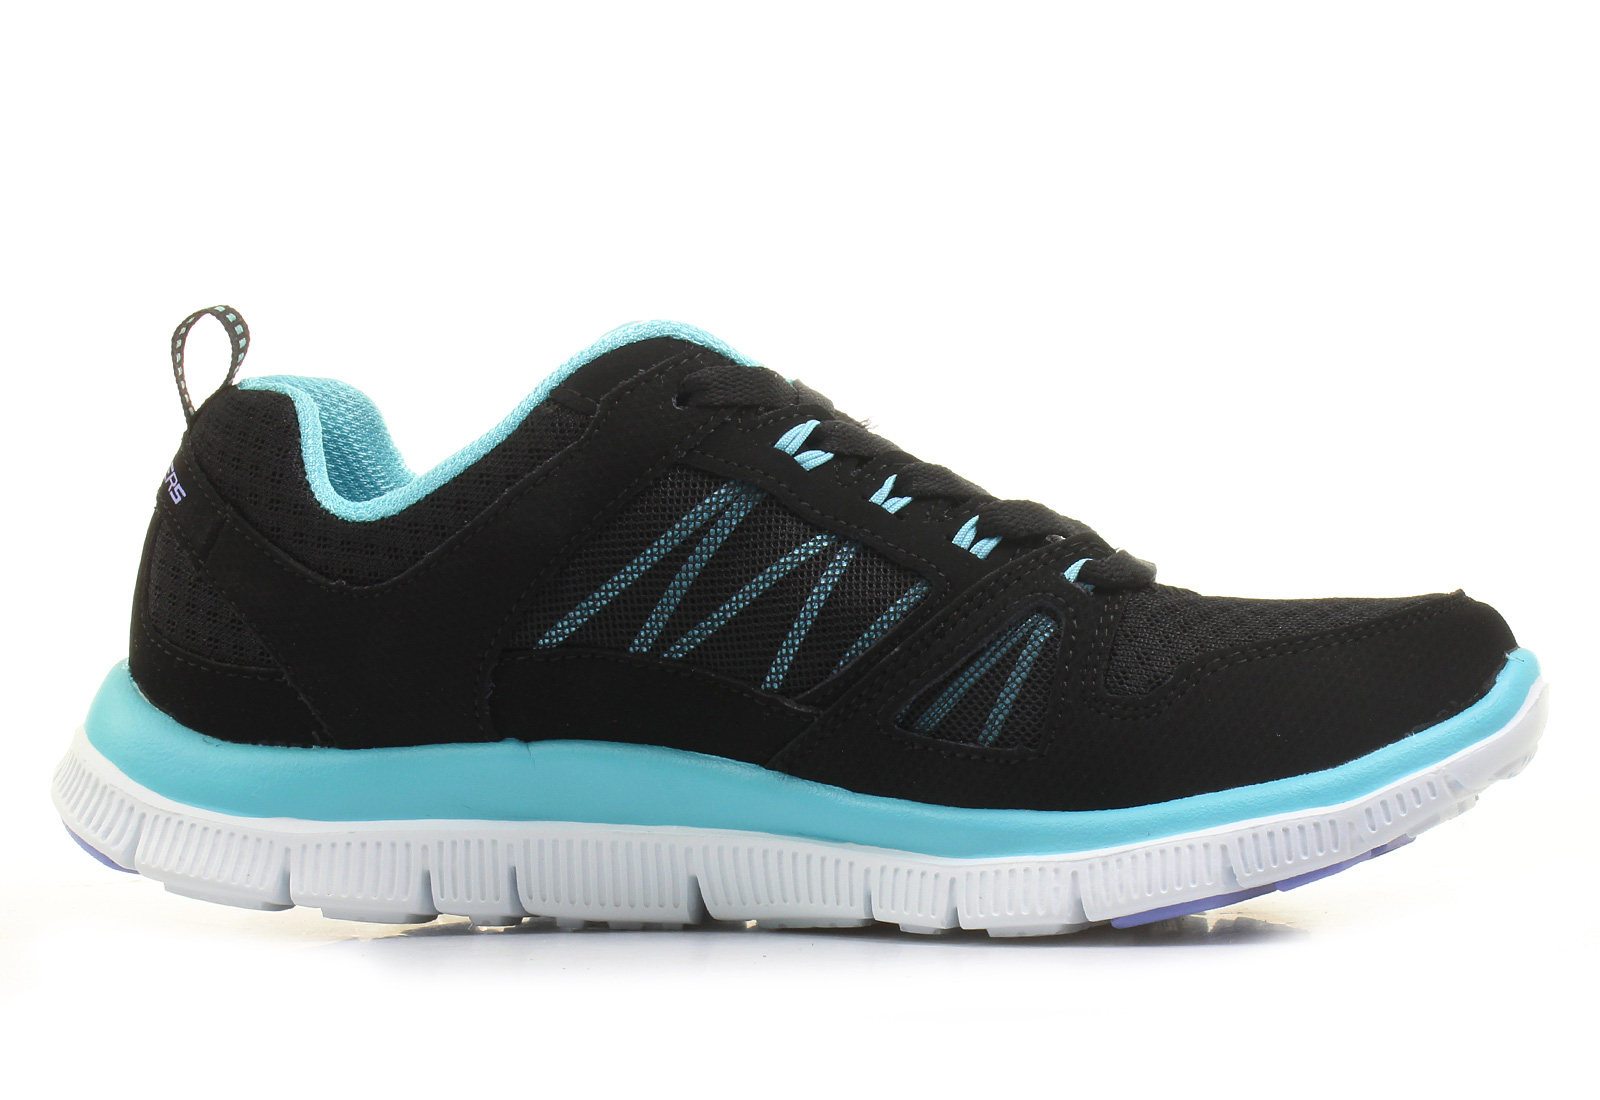 Skechers Shoes Adaptable 12055 BKTQ Online shop for sneakers, shoes and boots